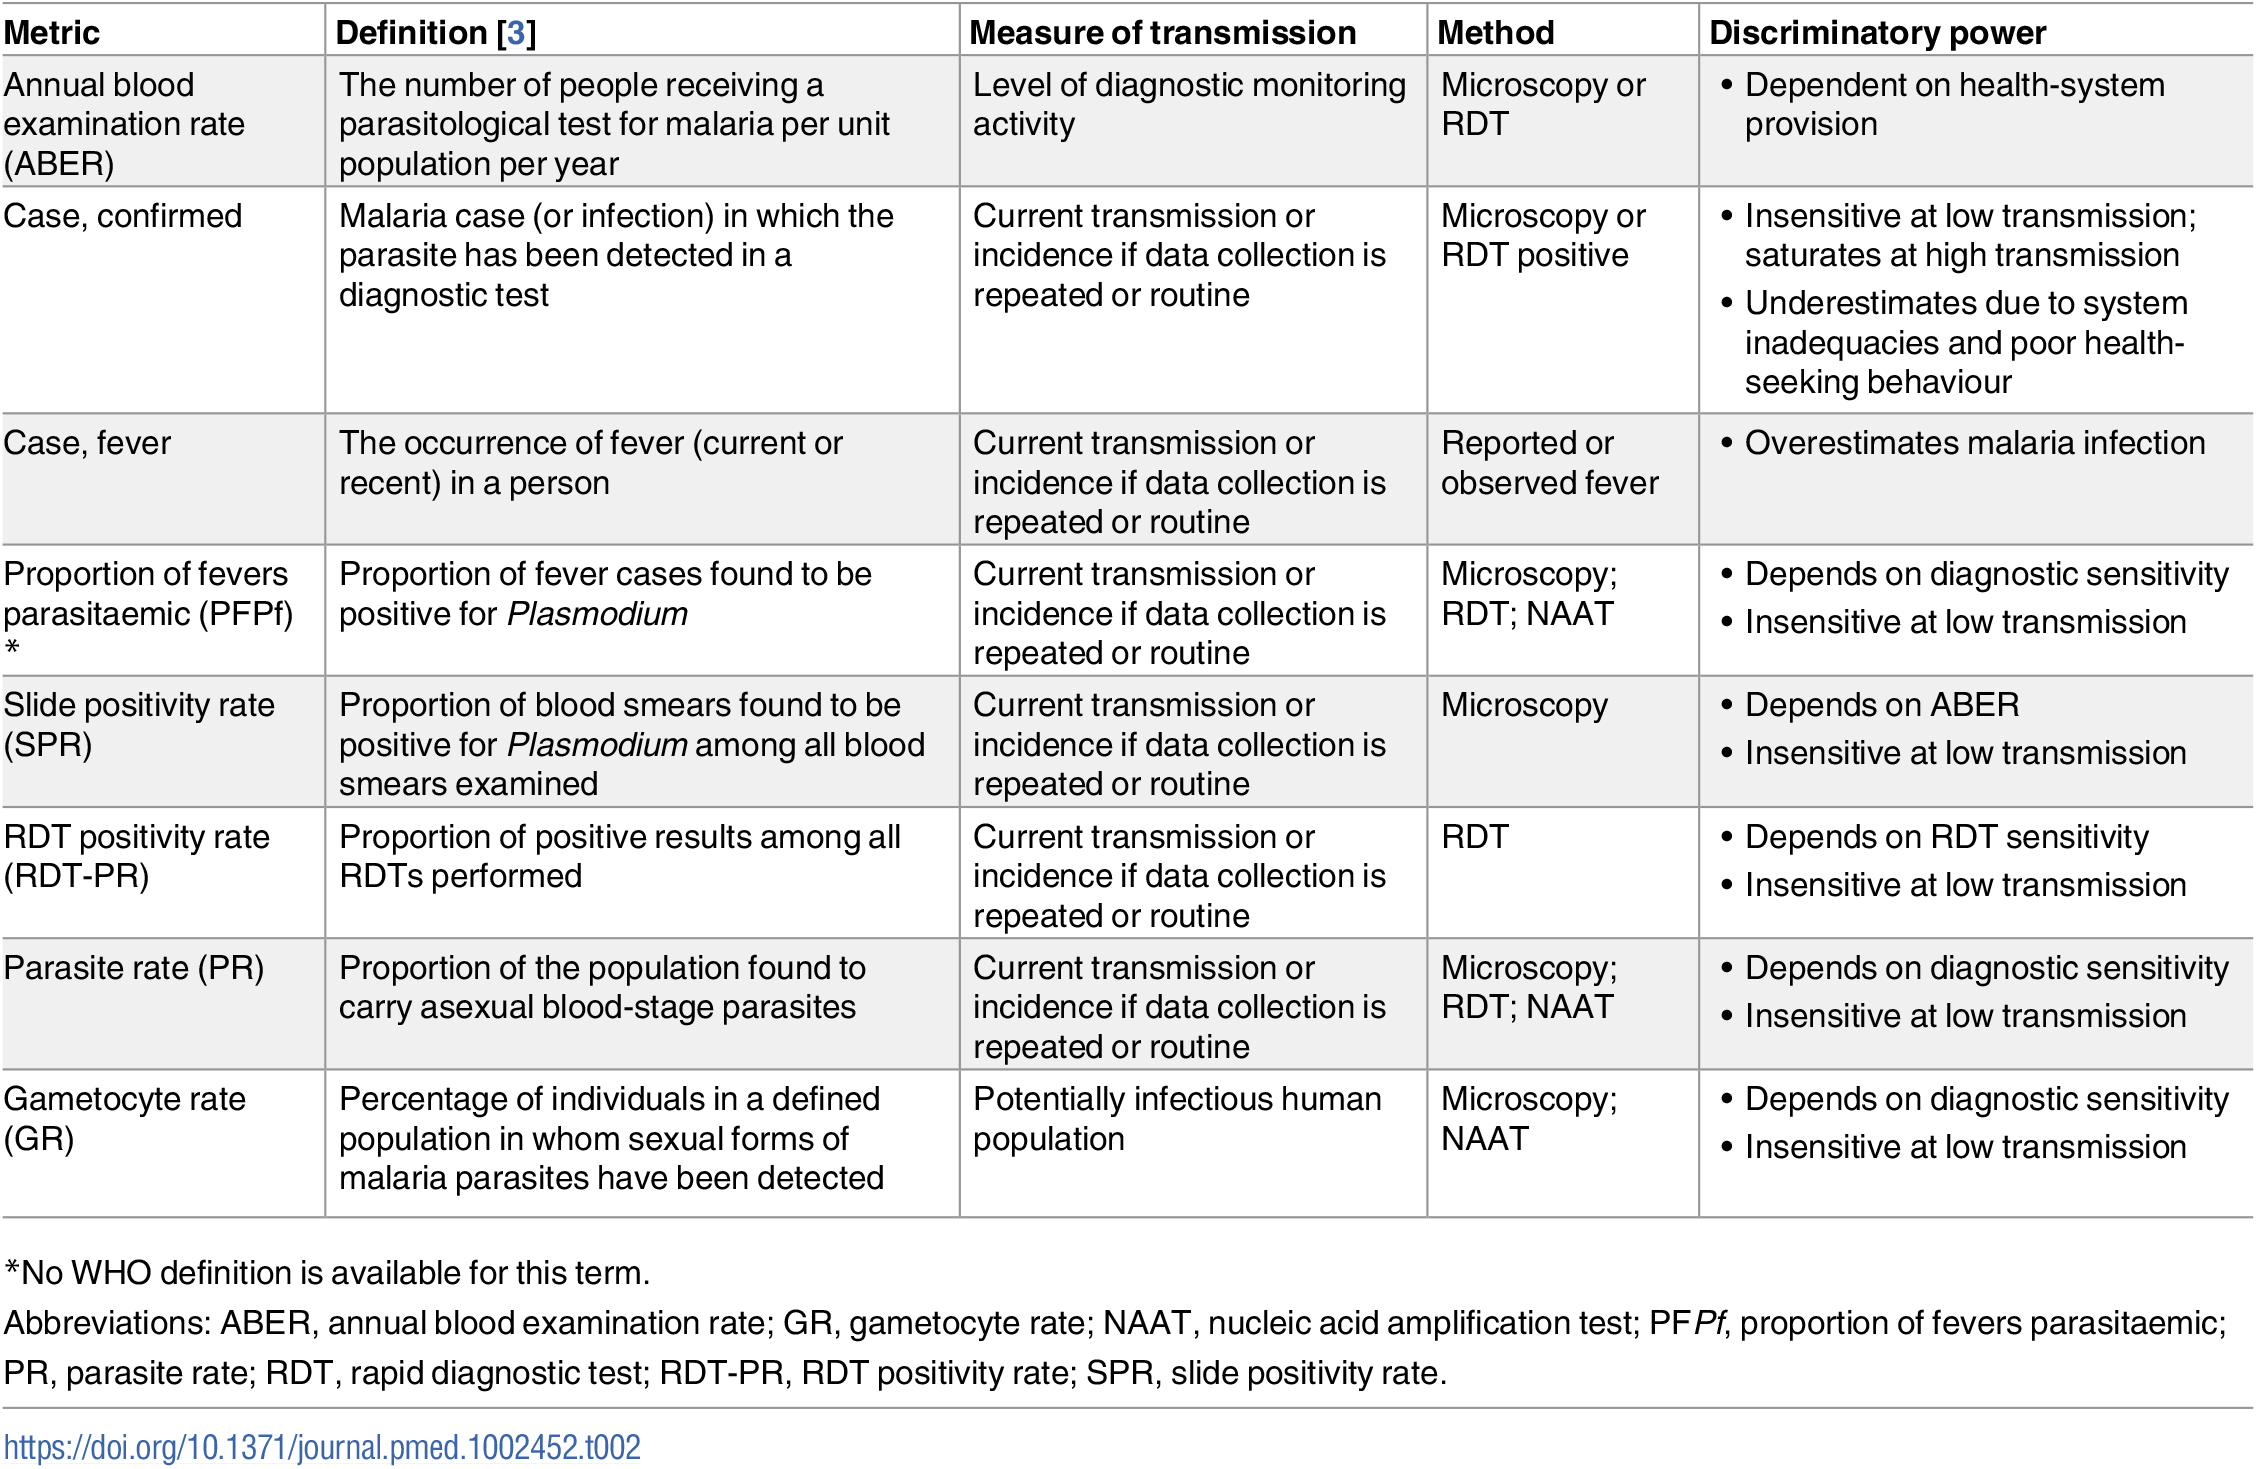 Summary of currently available malaria transmission metrics in humans.